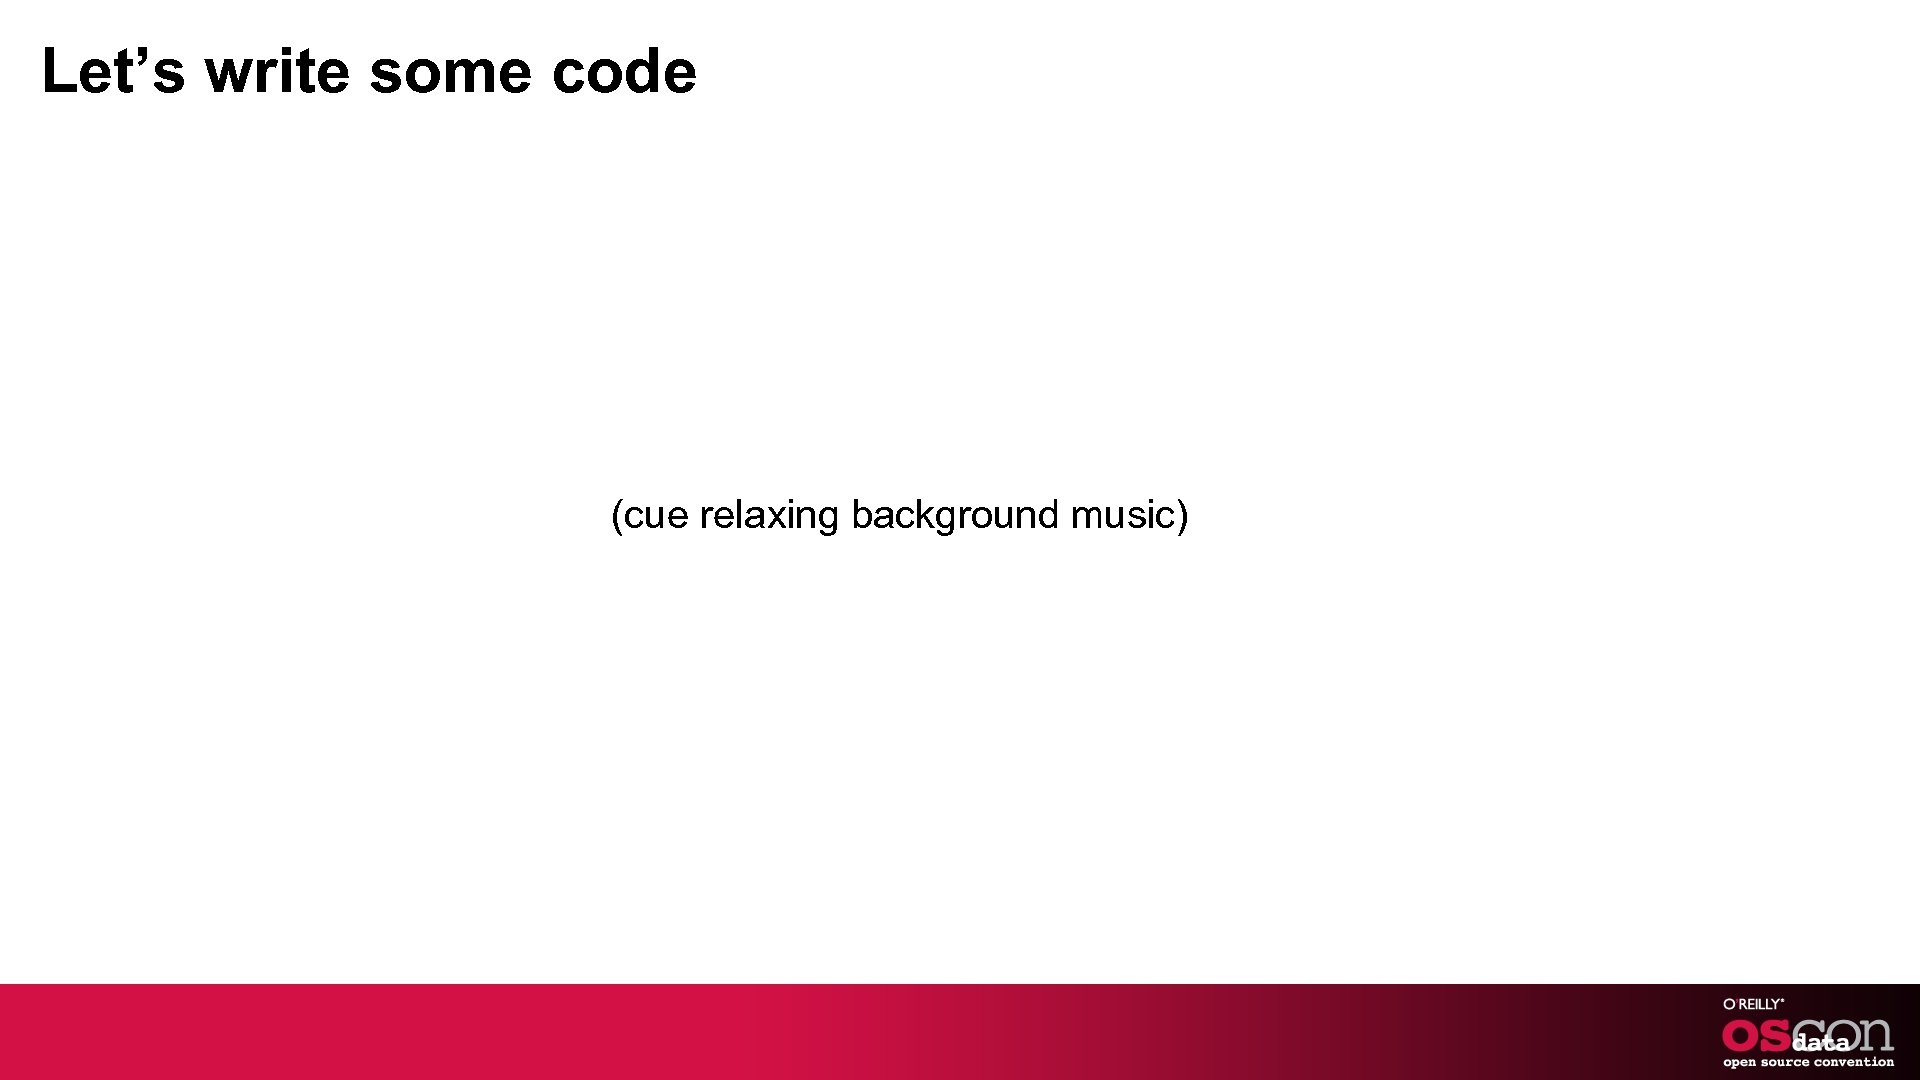 Let's write some code (cue relaxing background music)